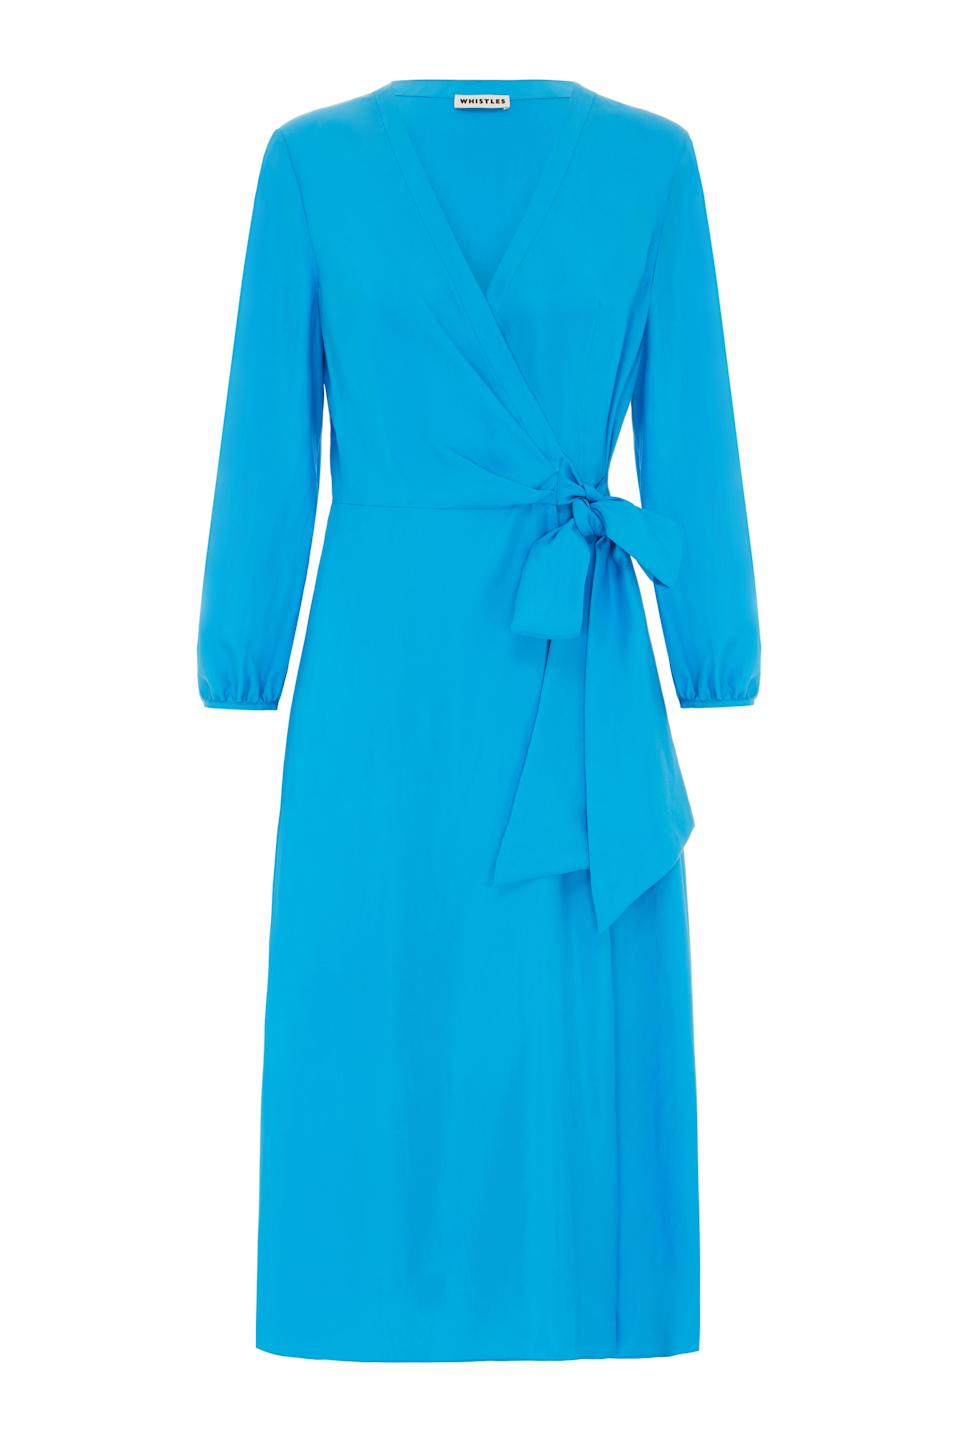 """<p>This blue hue is certainly not for the wallflowers, but colour is very much in right now. Add to that that wrap styles are one of the most universally flattering shapes and we present you this AH-MAZING Whistles dress. <em><a rel=""""nofollow noopener"""" href=""""http://www.whistles.com/women/clothing/dresses/callie-silk-wrap-dress-27129.html?cgid=Dresses_Clothing_WW&dwvar_callie-silk-wrap-dress-27129_color=Turquoise#start=0"""" target=""""_blank"""" data-ylk=""""slk:Buy here."""" class=""""link rapid-noclick-resp"""">Buy here.</a></em> </p>"""